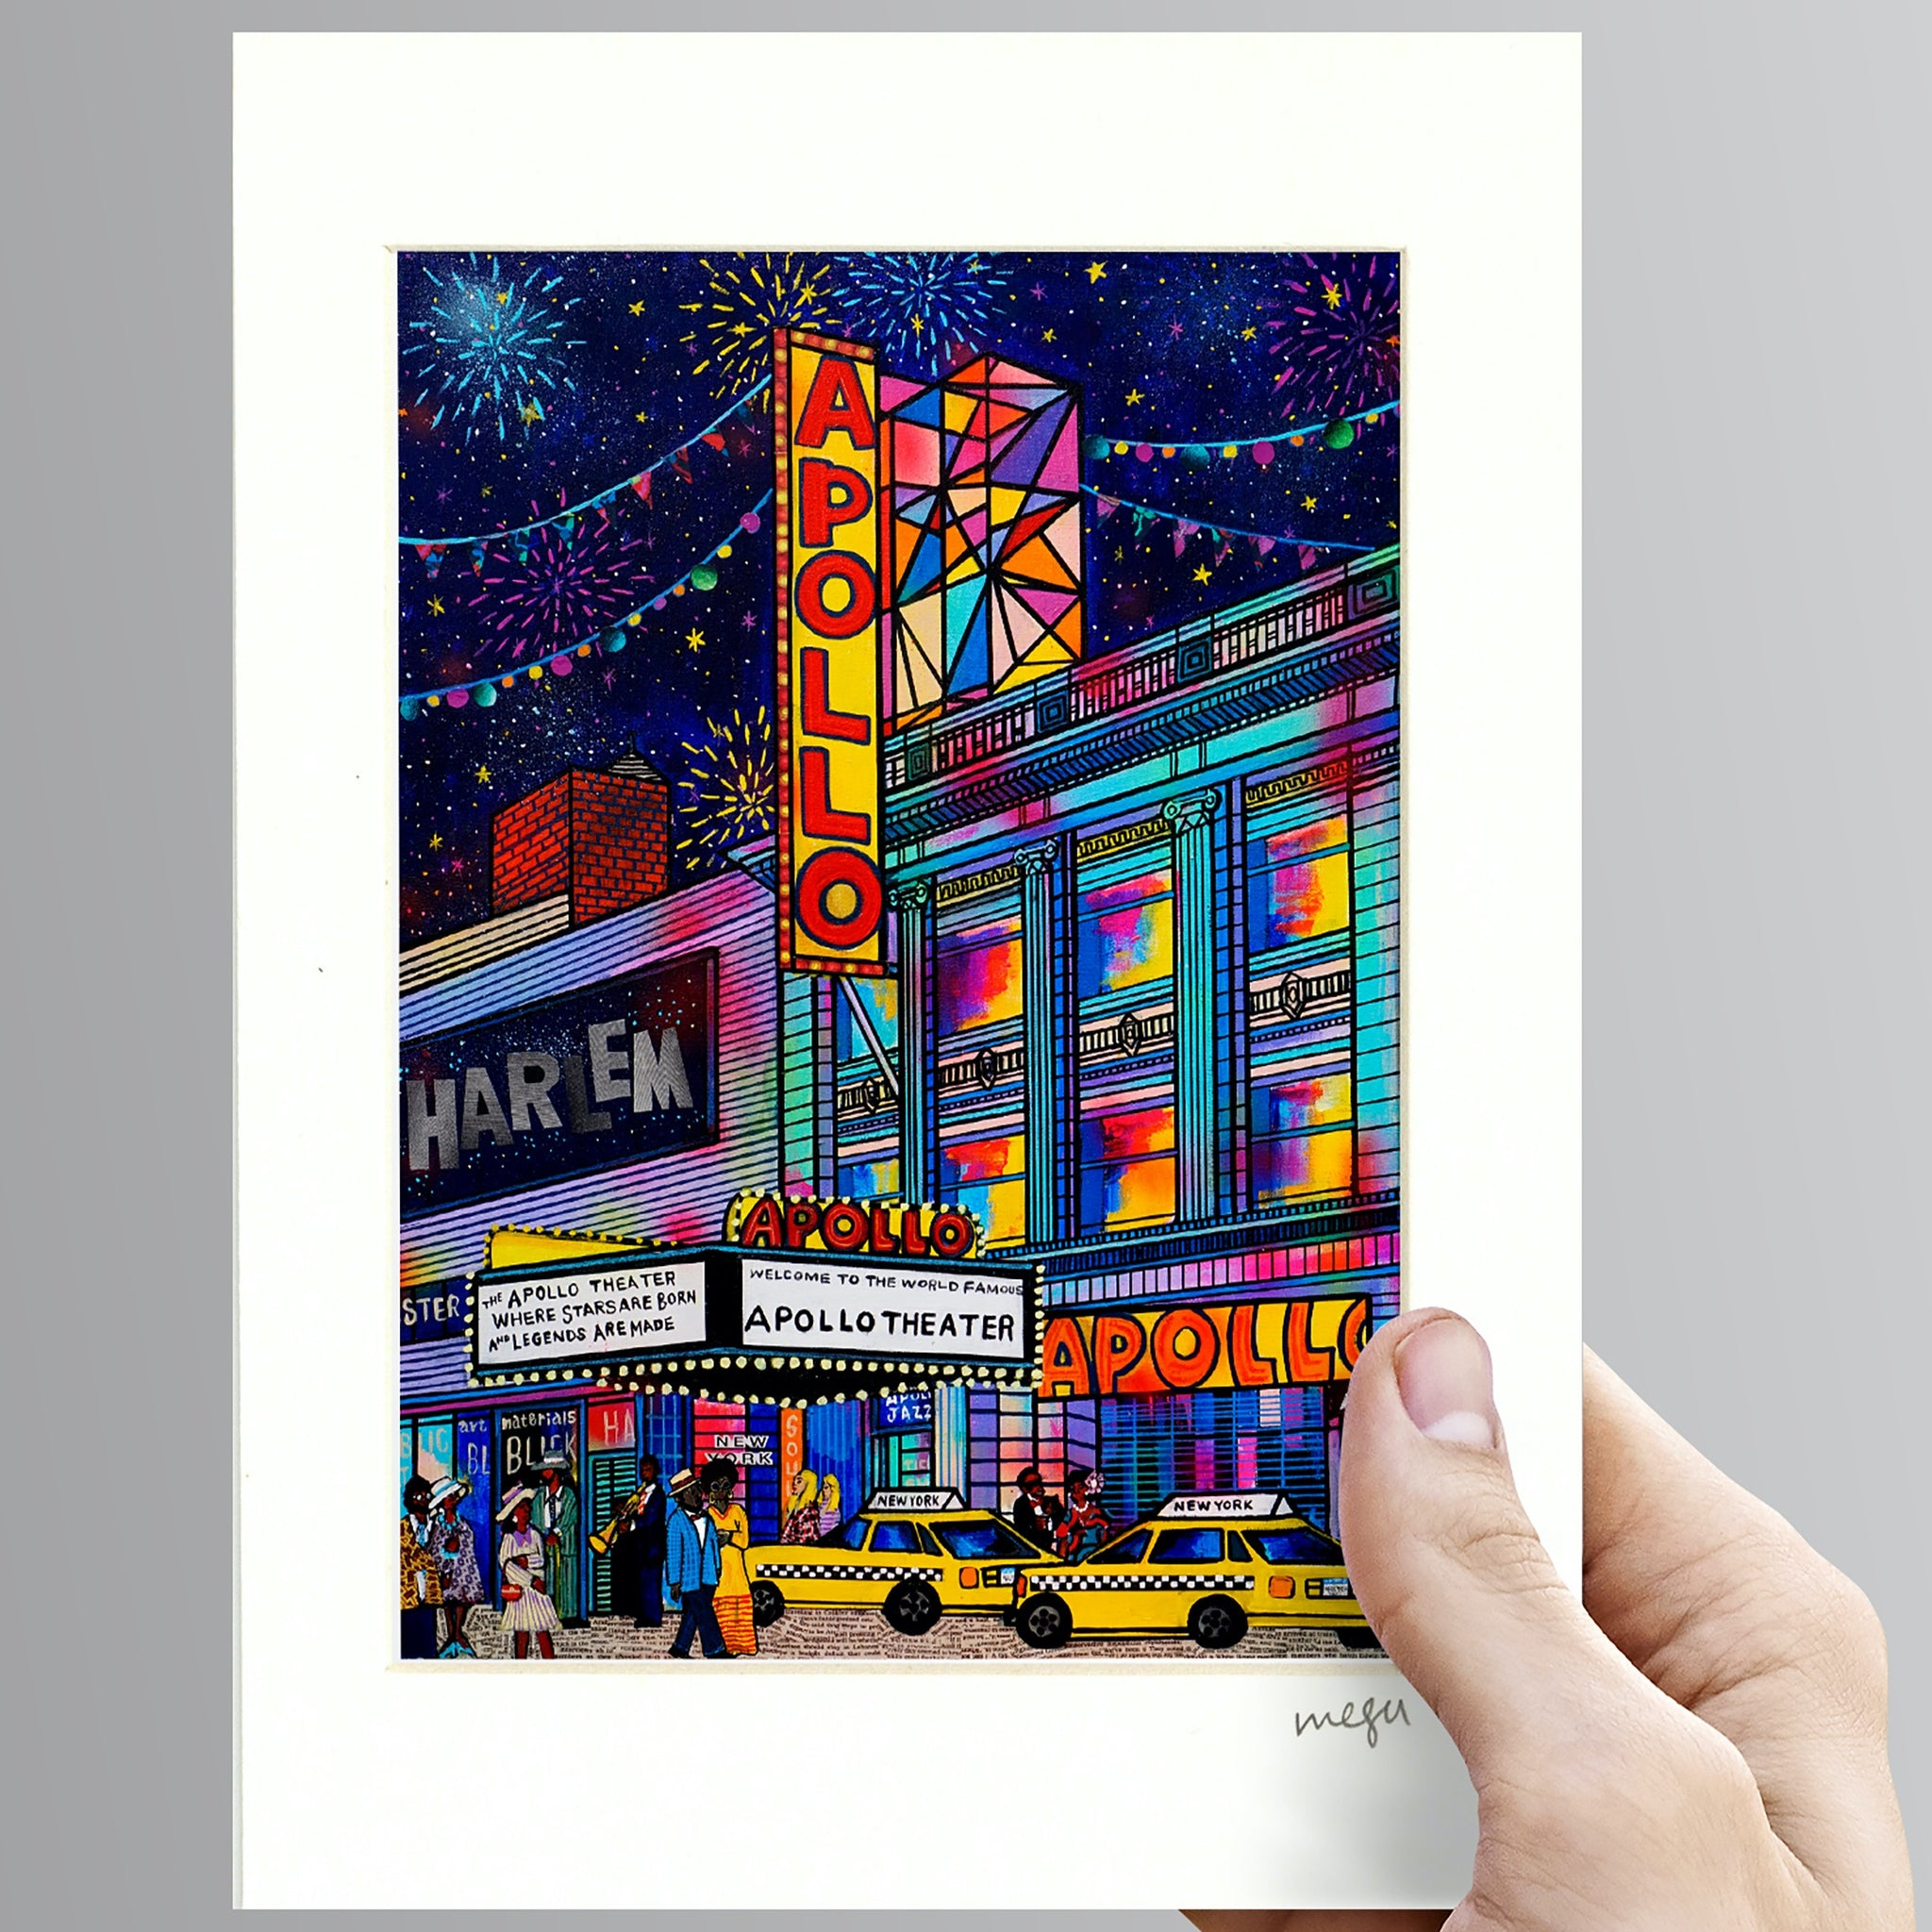 Apollo Theater Harlem-New York Art-New York Home Decor-Harlem Art-New York print-New York Gift-Harlem New York Art-Harlem art print